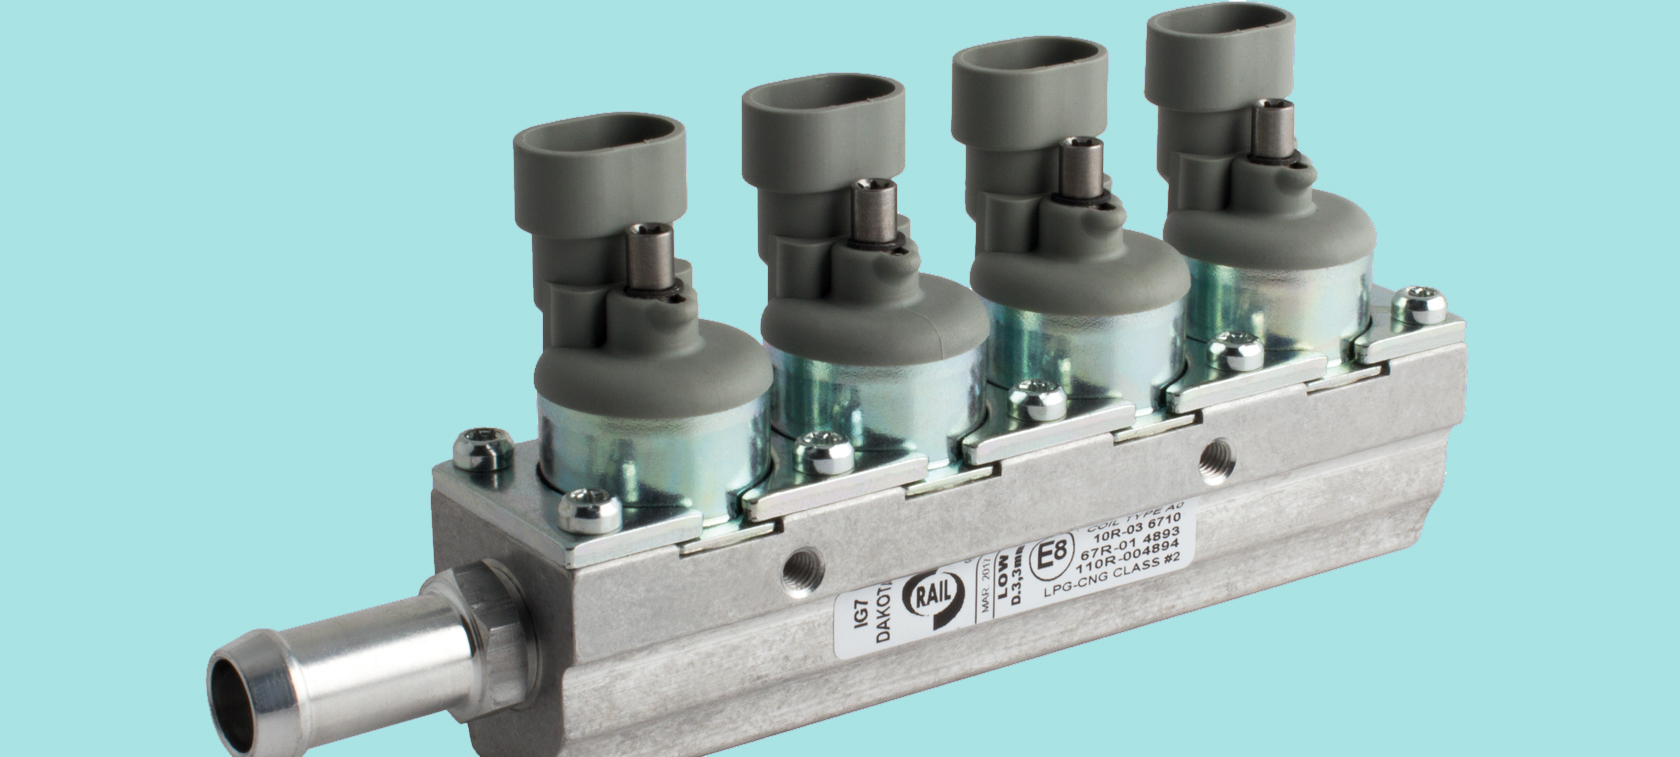 Rail IG7 Dakota - the versatile one